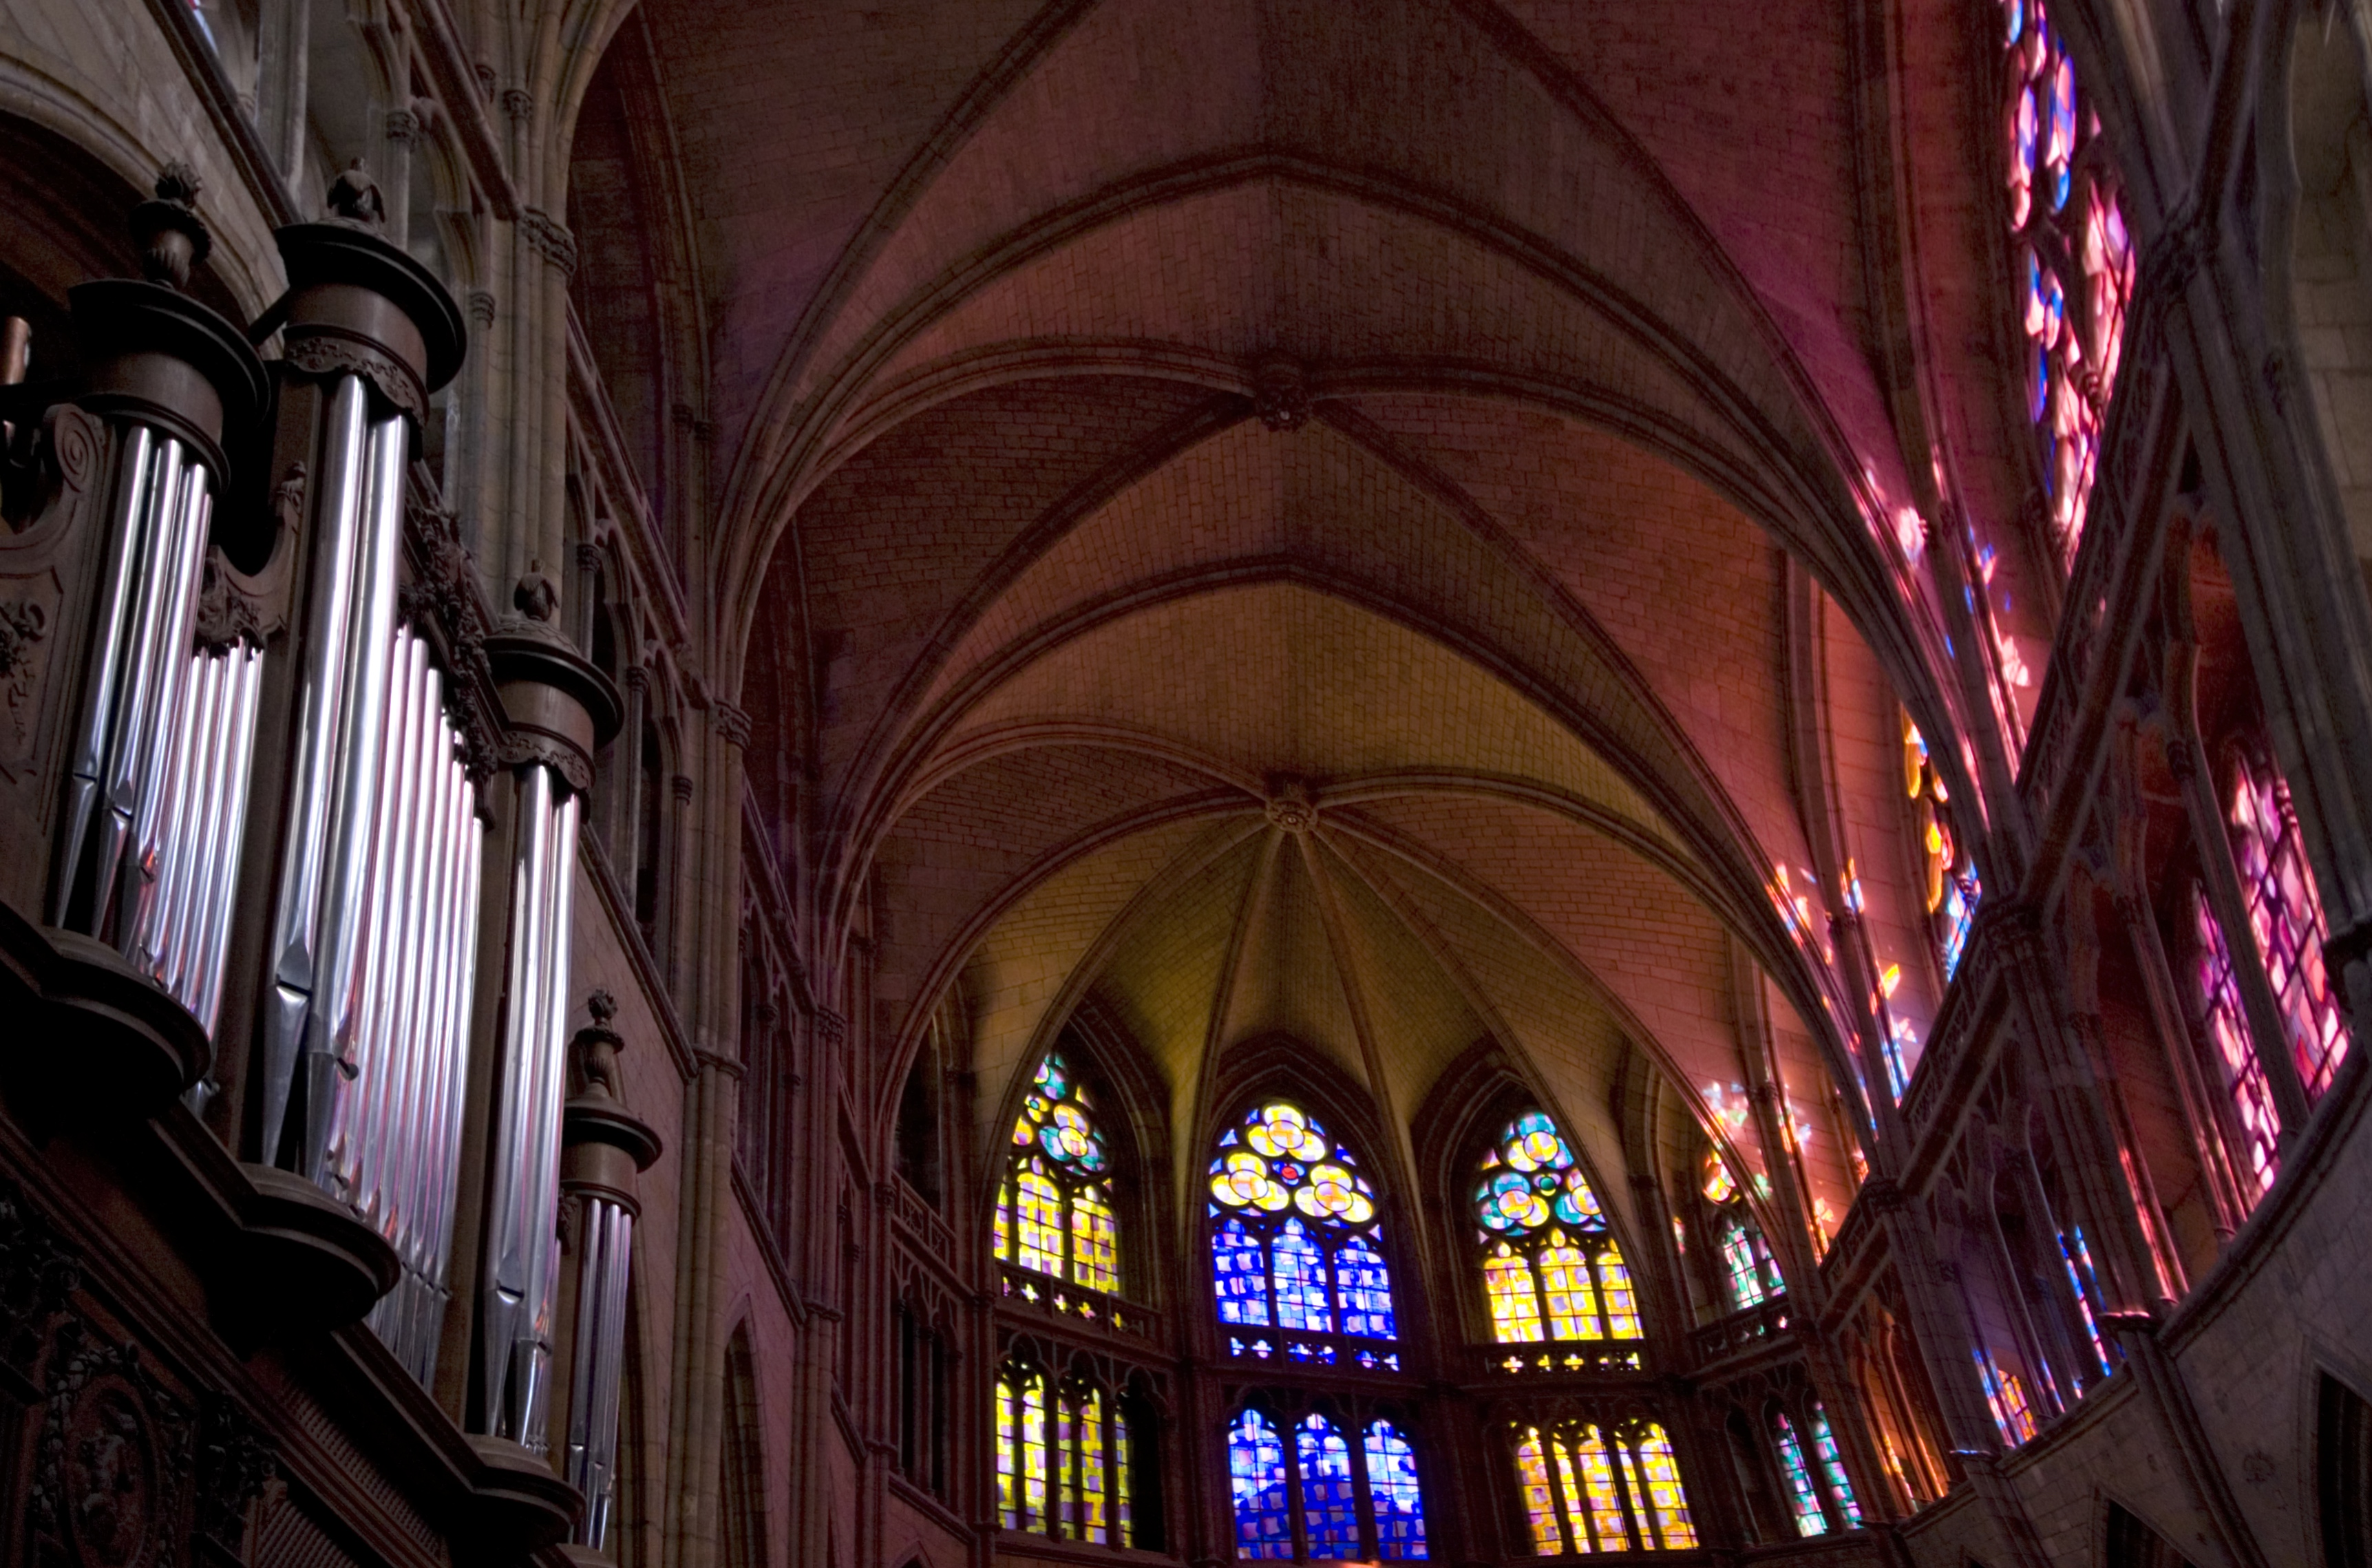 Orgue de la Cathédrale de Nevers